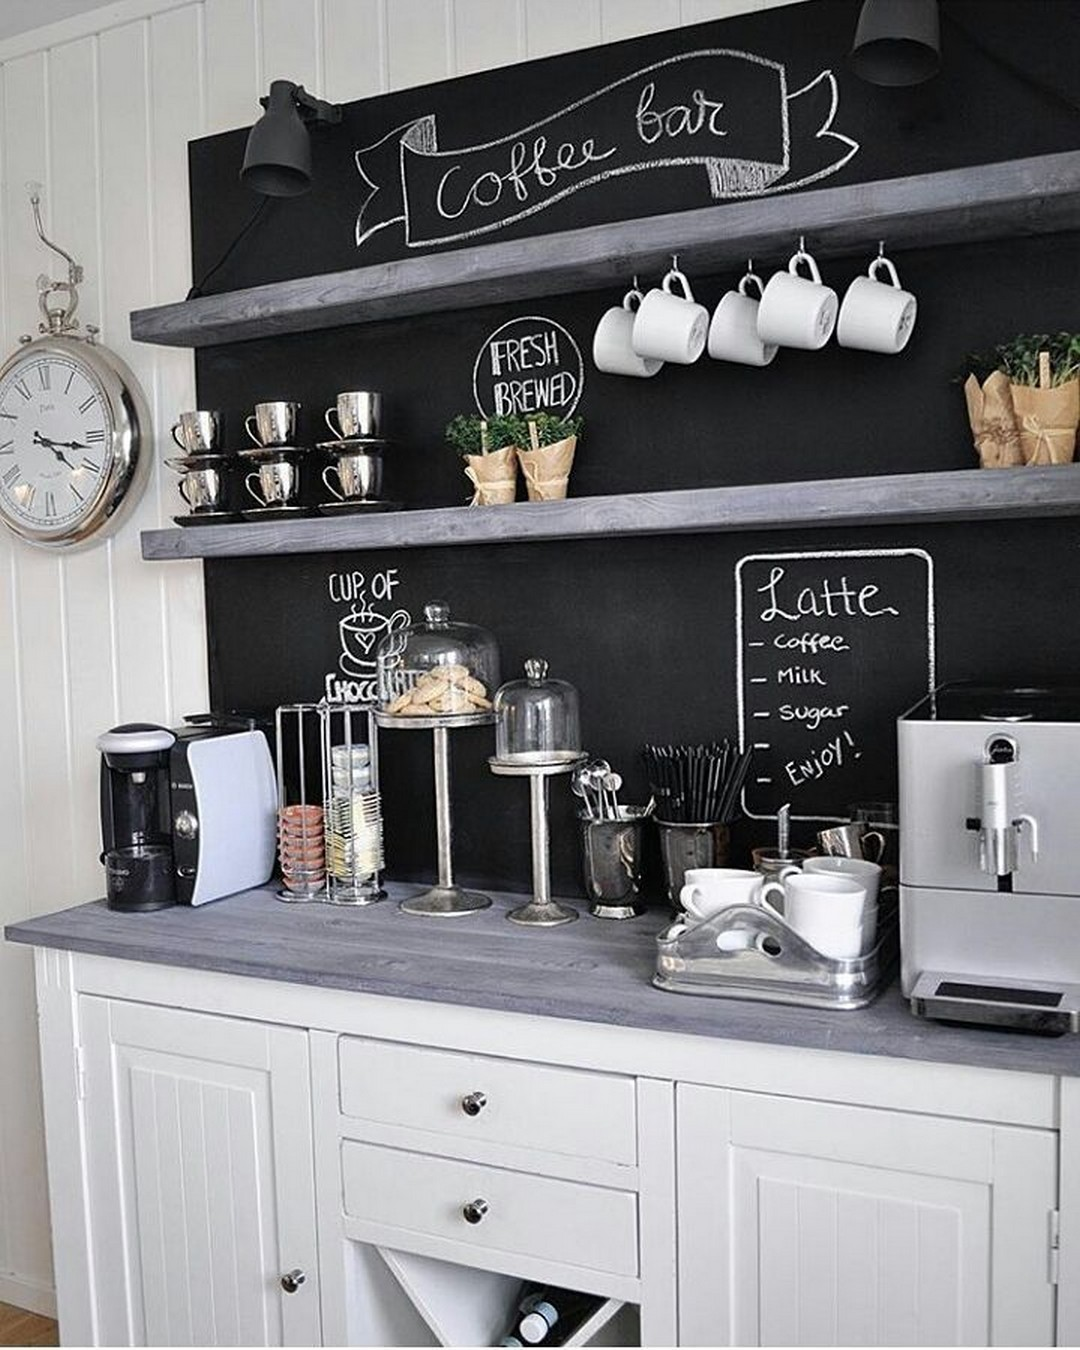 10 Diy Coffee Bar Cabinet Ideas For The Perfect Cup Of Joe Coffee Bar Home Coffee Station Kitchen Coffee Bars In Kitchen